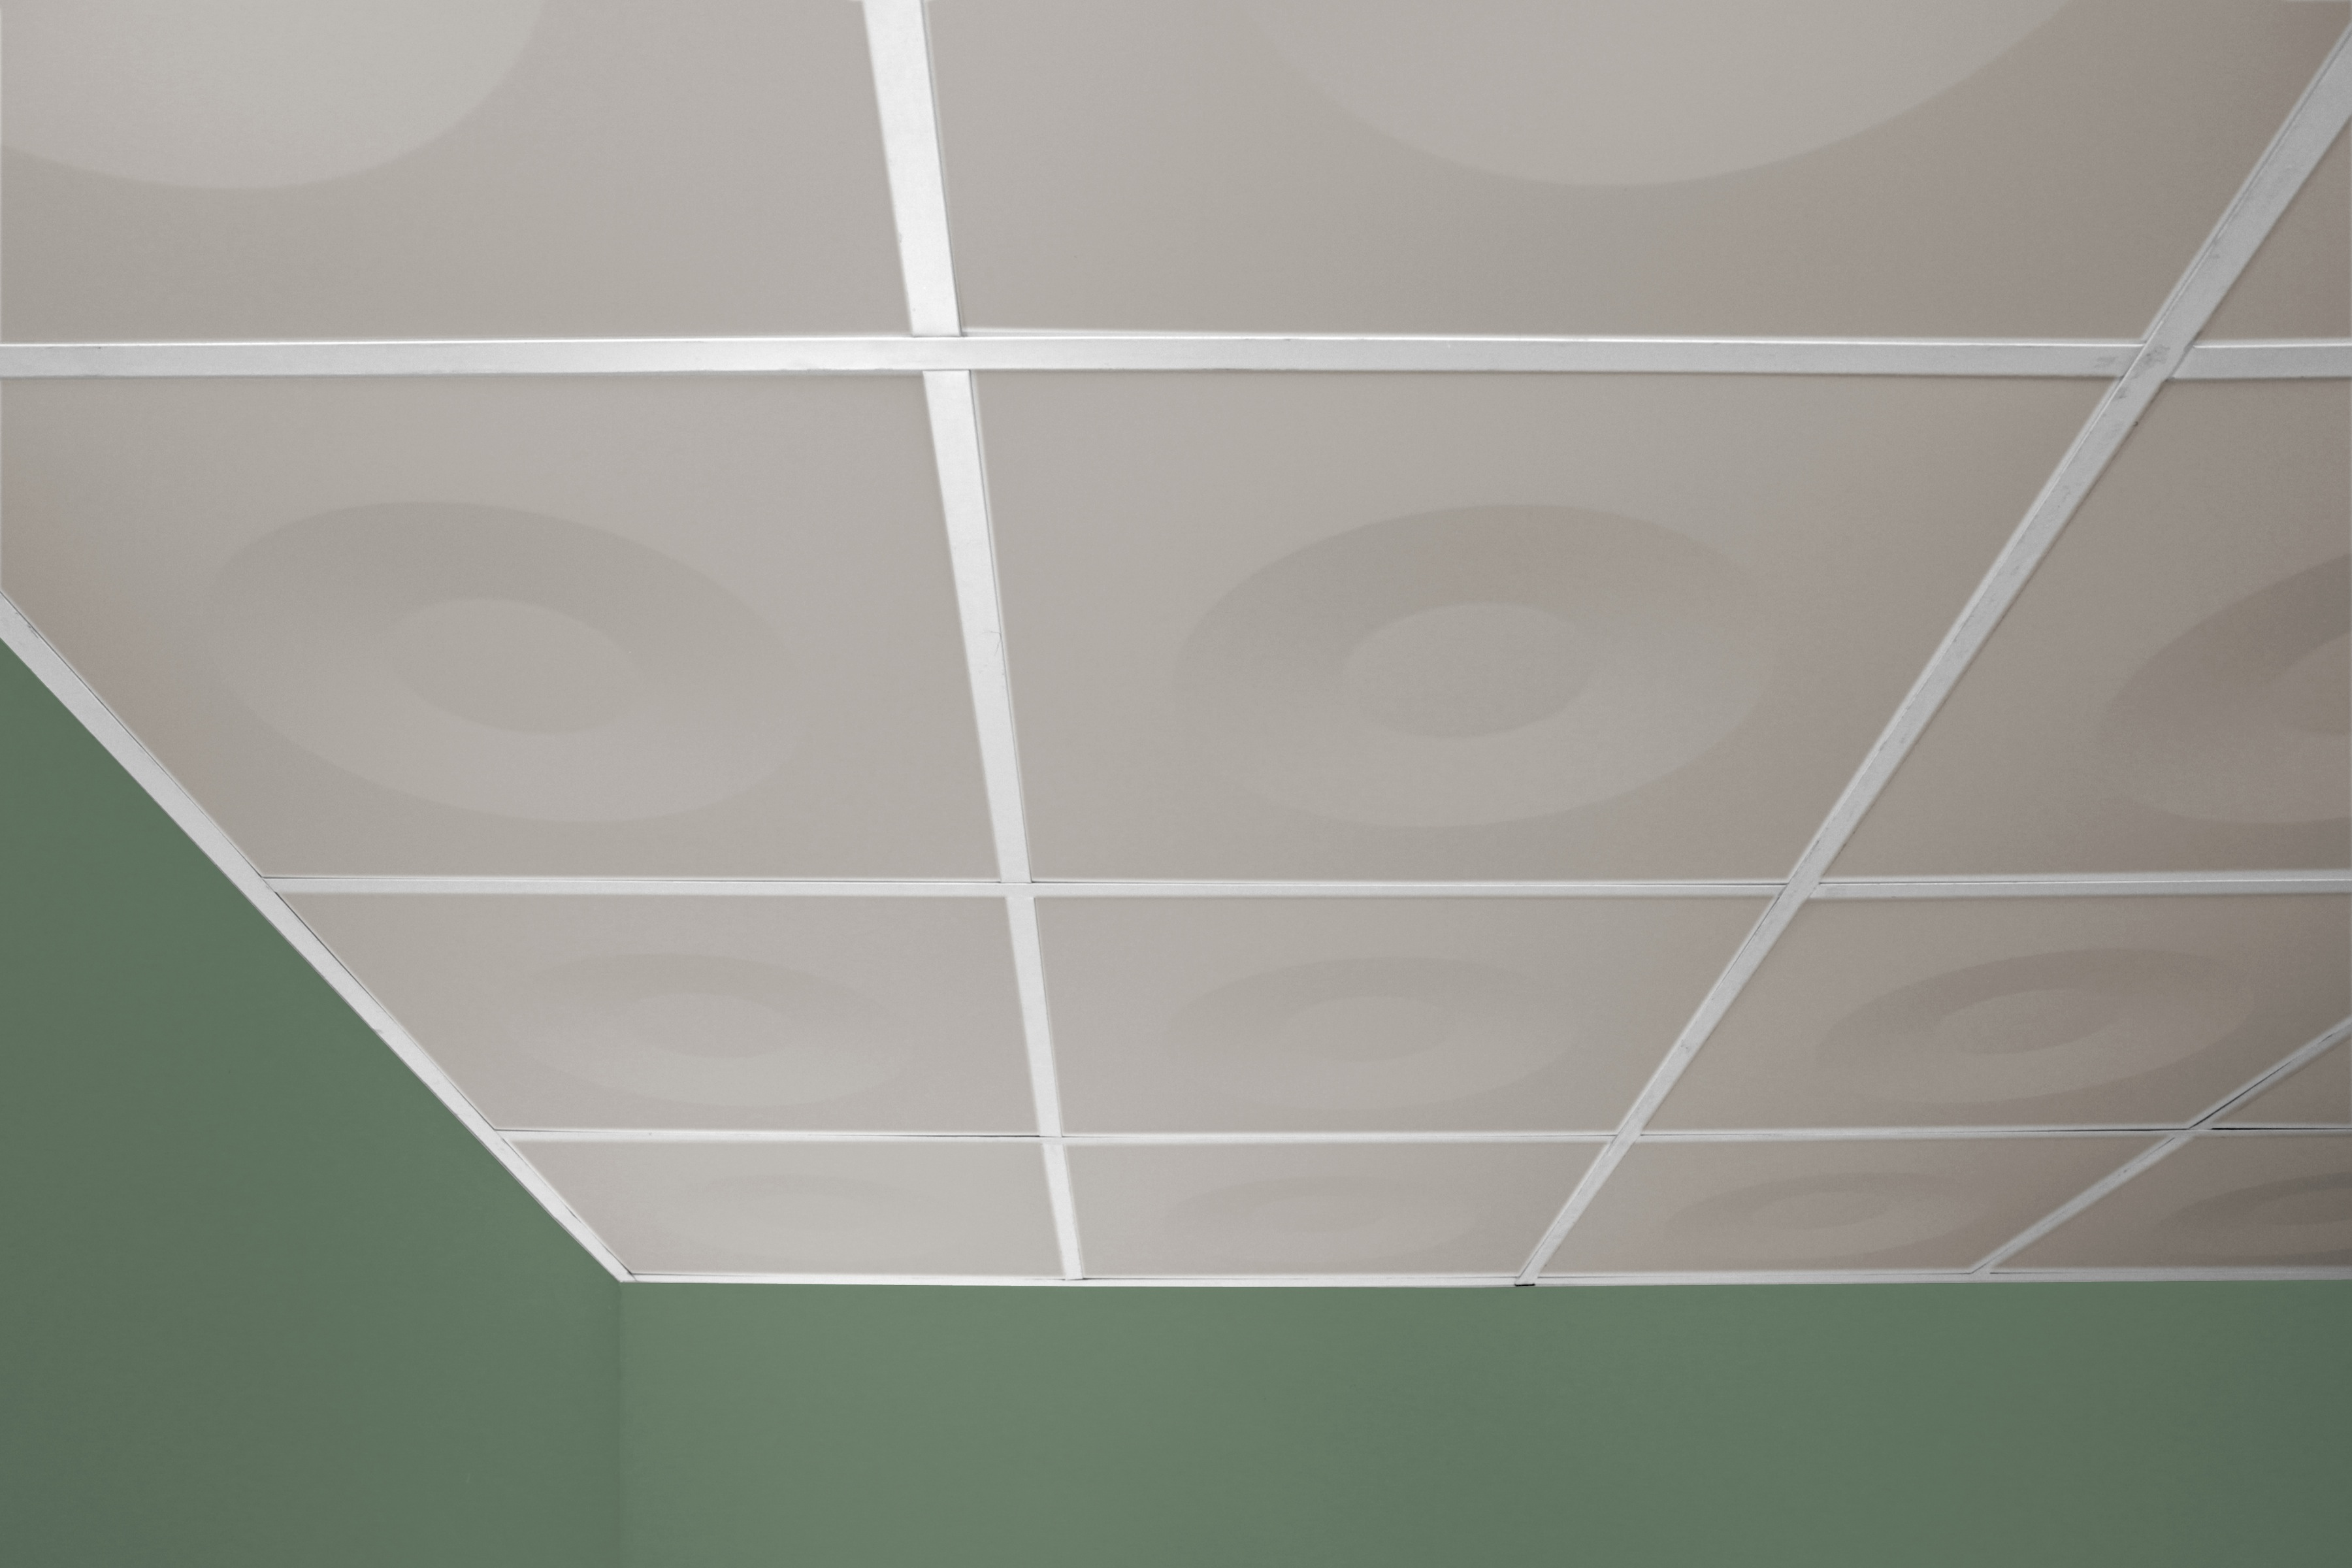 Ceilume launches fda compliant culinary ceiling tiles coup culinary ceiling tiles in latte installed in an actual ceiling dailygadgetfo Image collections